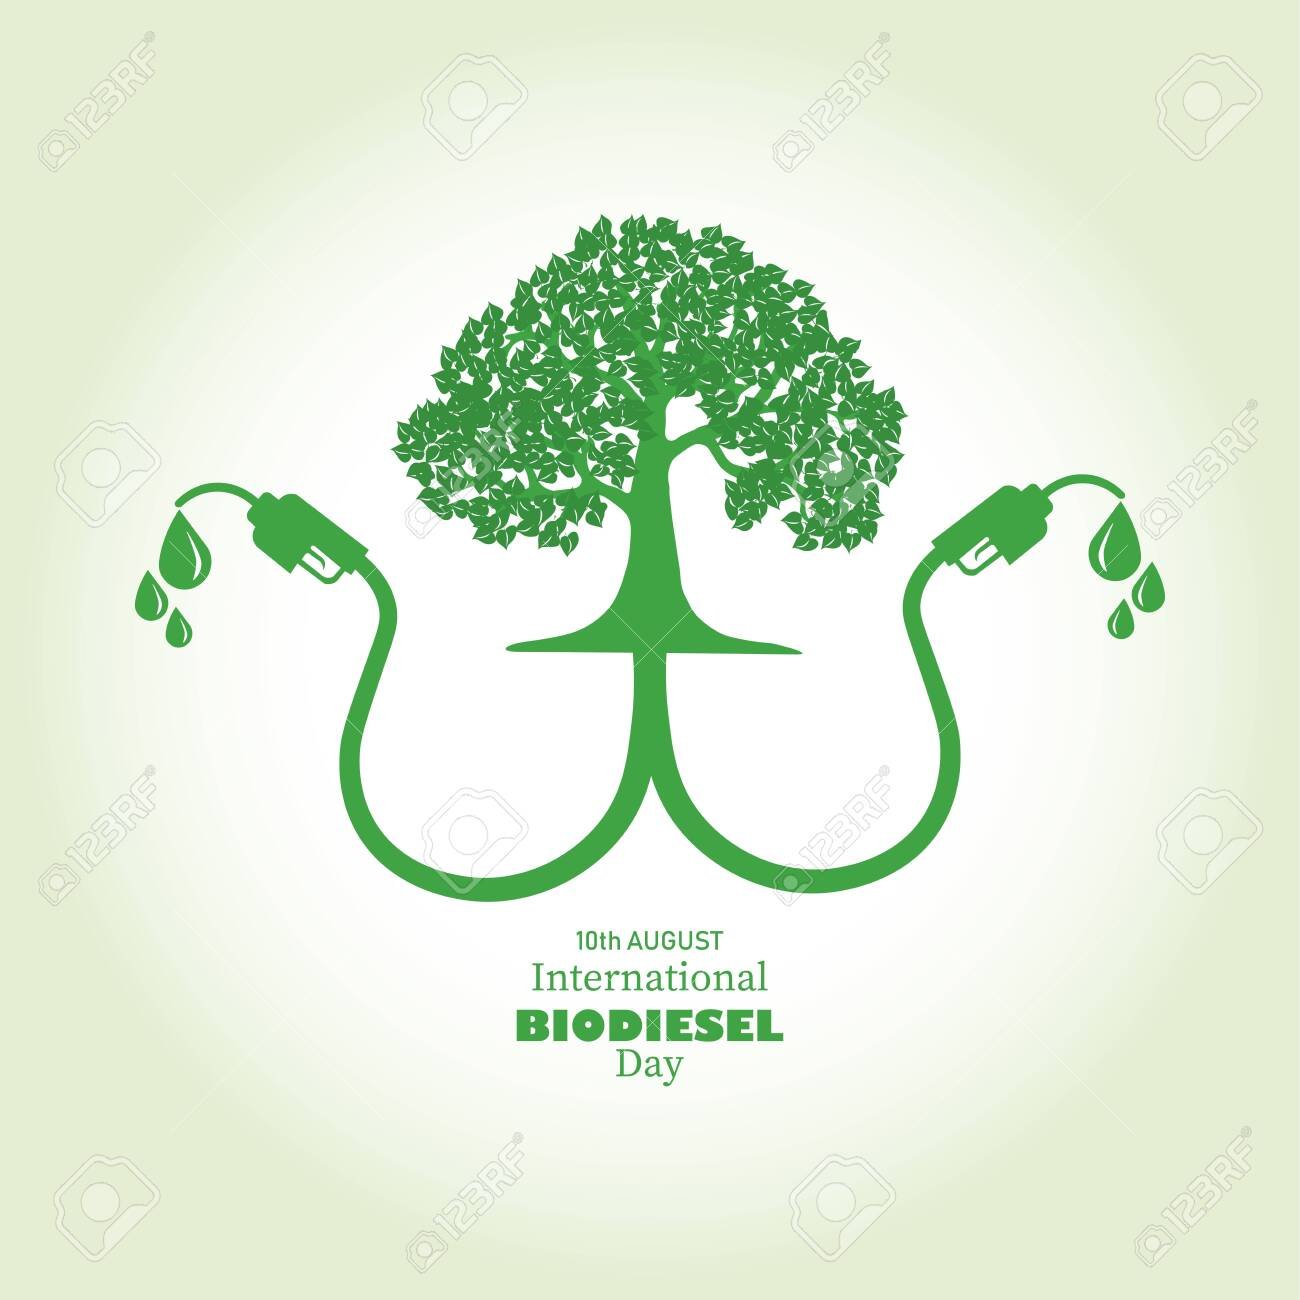 Vector Illustration of International Biodiesel Day which is observed on 10th of August. Abstract representation of a tree with Bio fuel and world map on background - 152187361